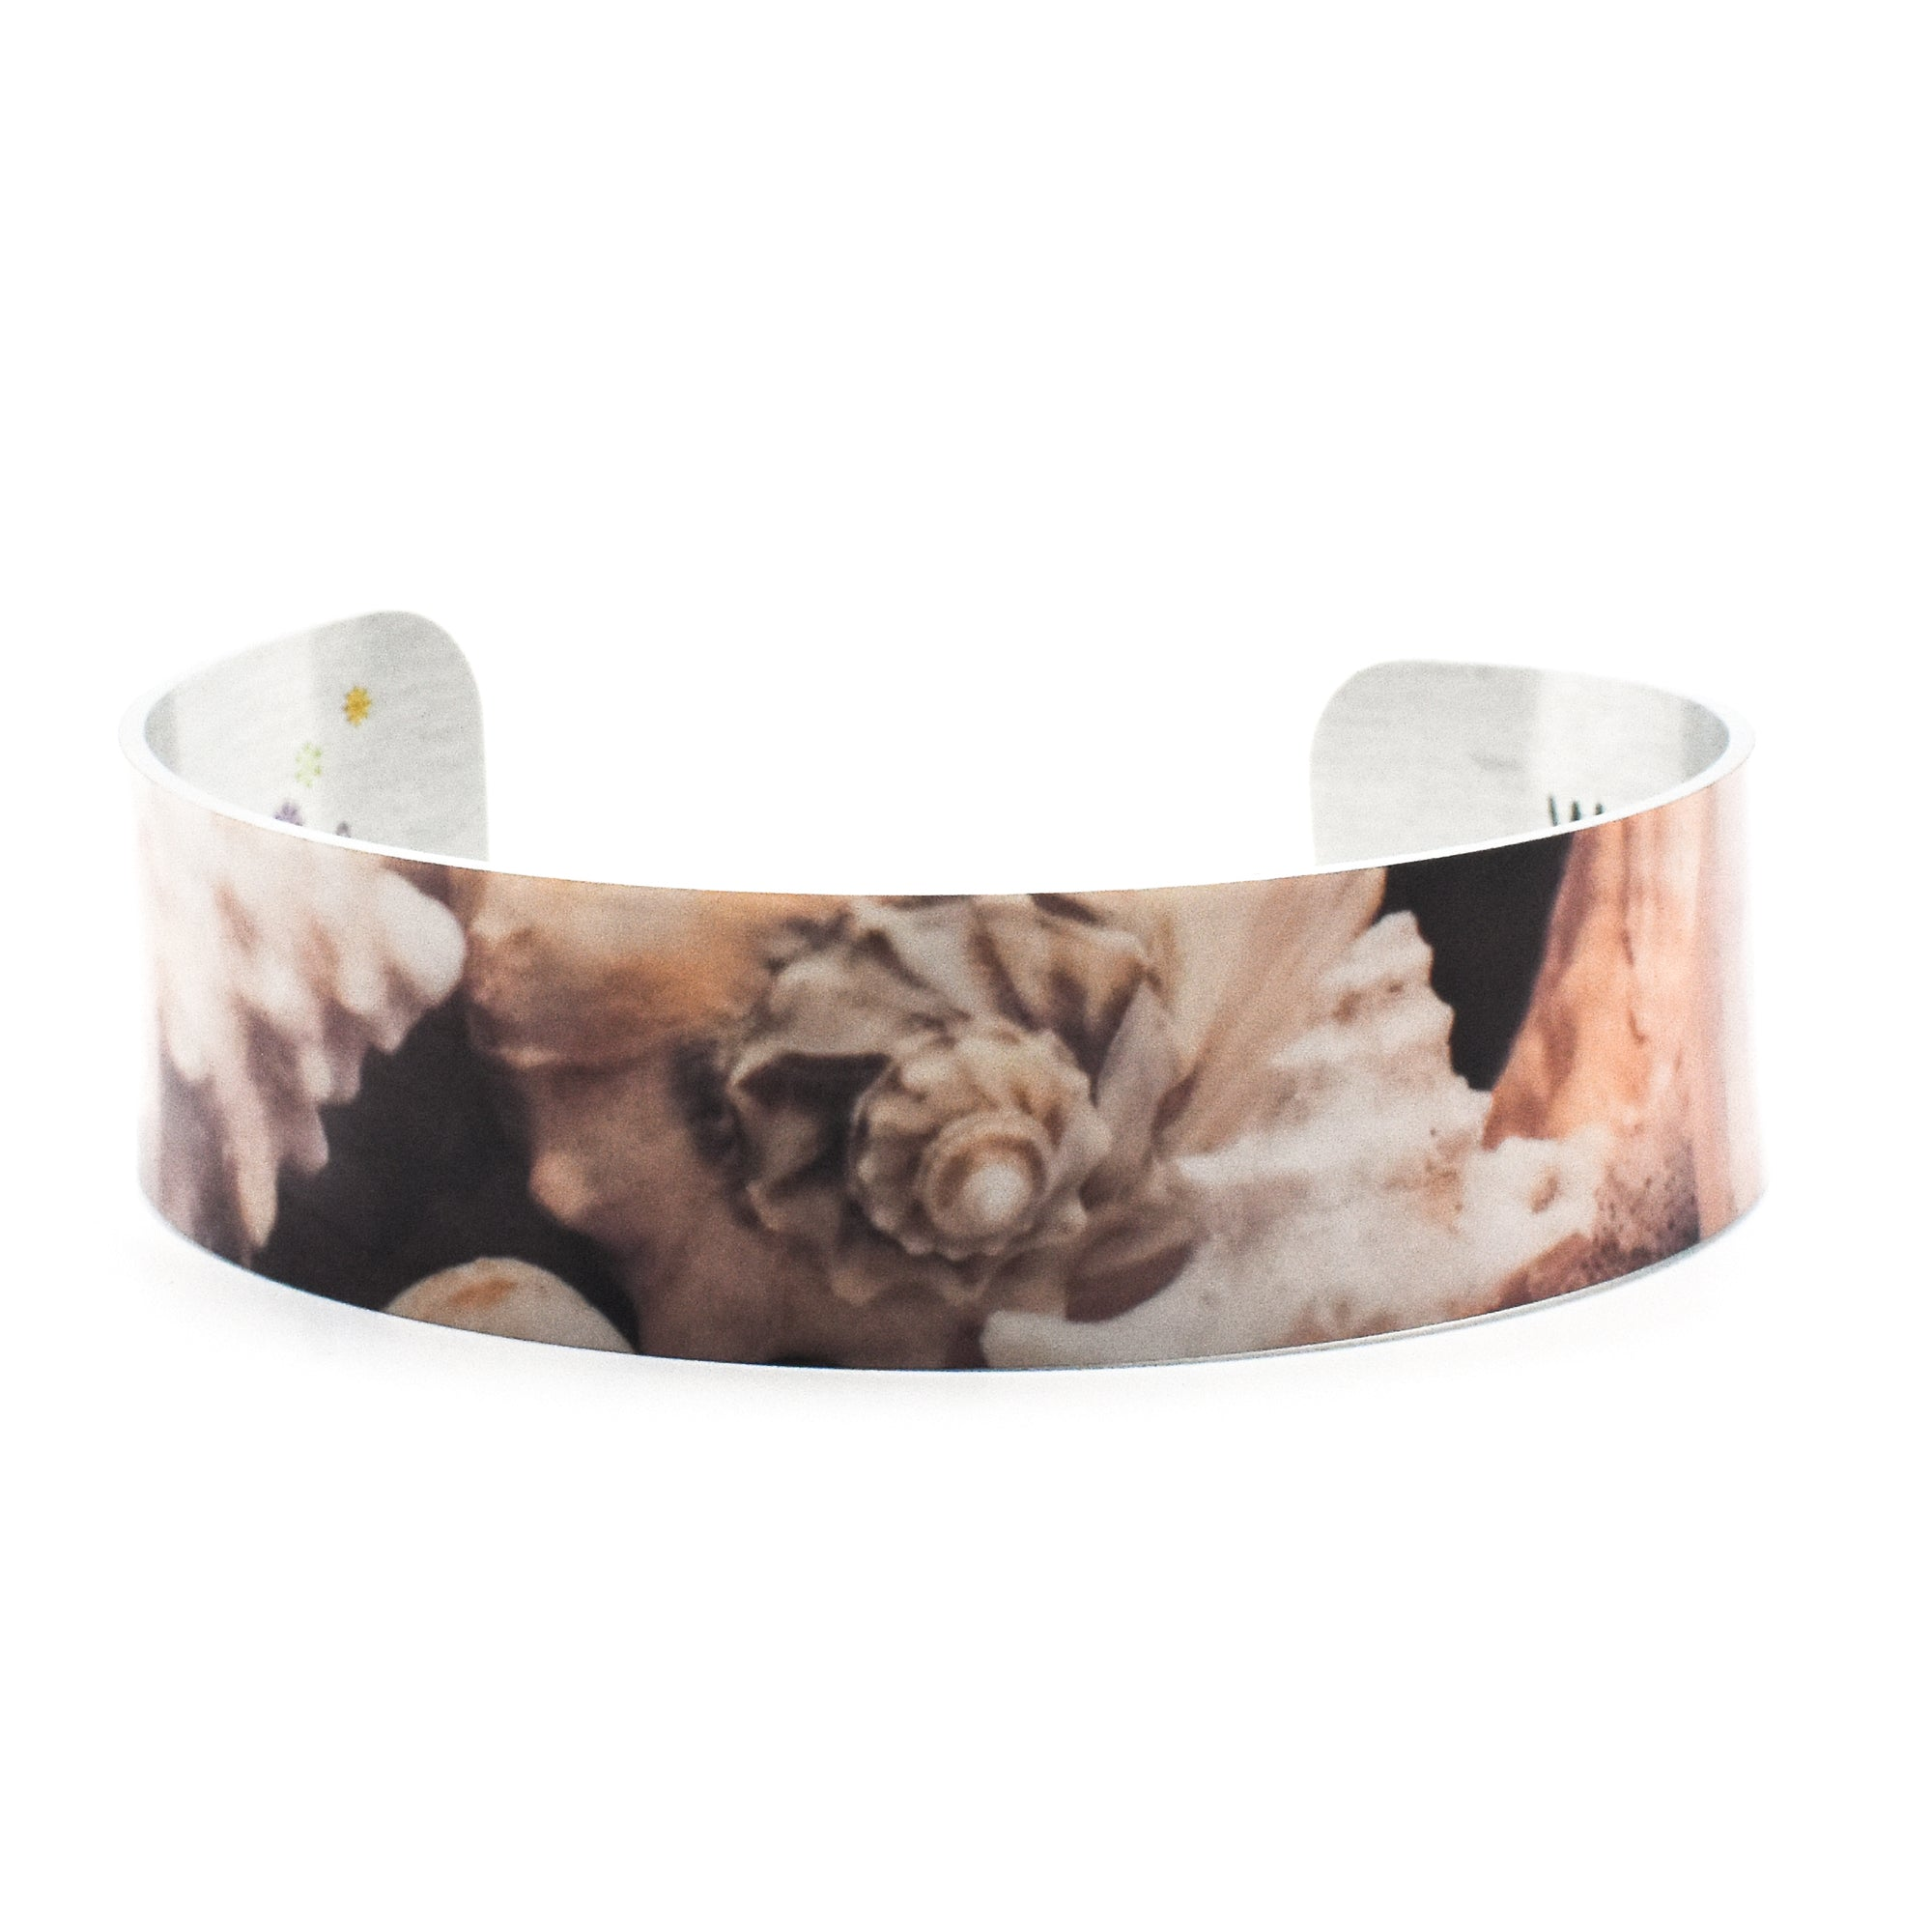 Standard view of conch shell bracelet | Narrow Cuff | Wear the Wonder